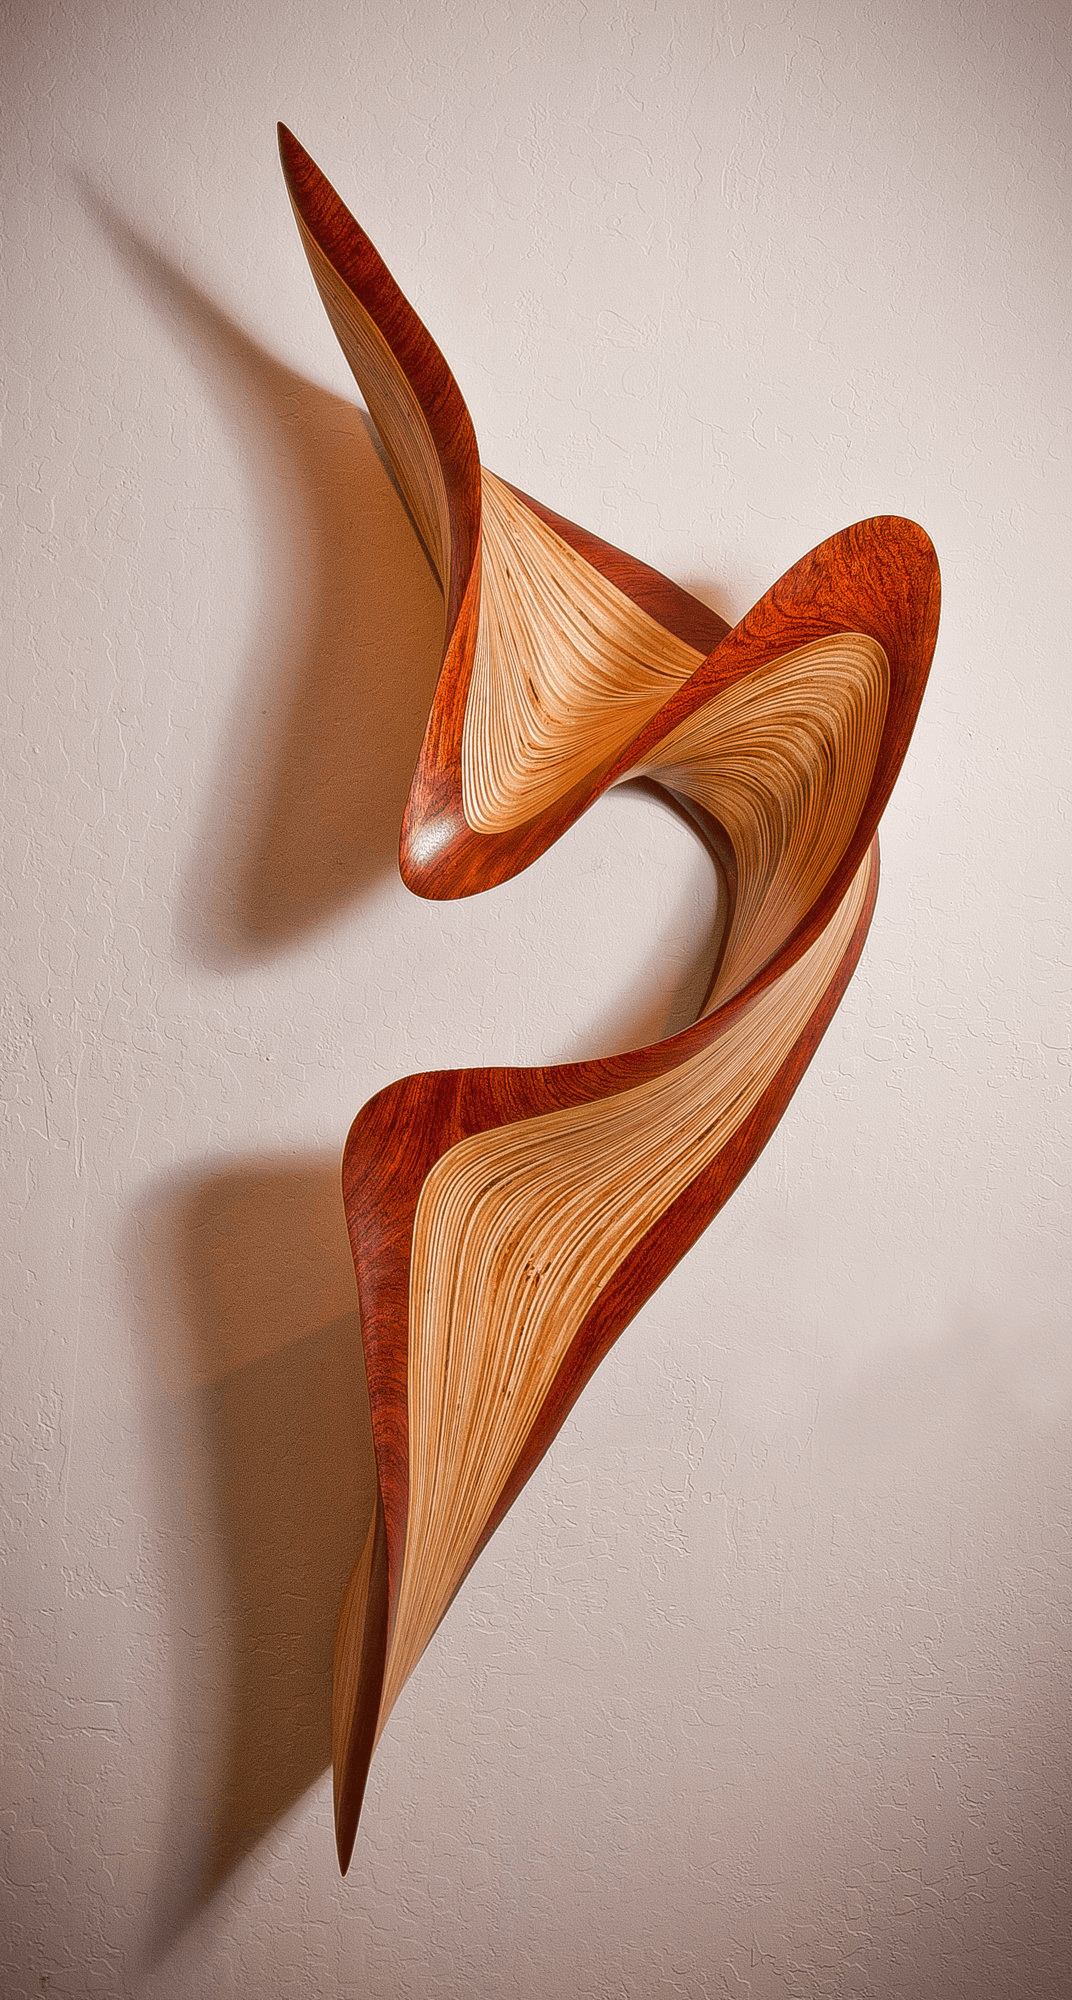 Wooden Sculpture art wall hangings